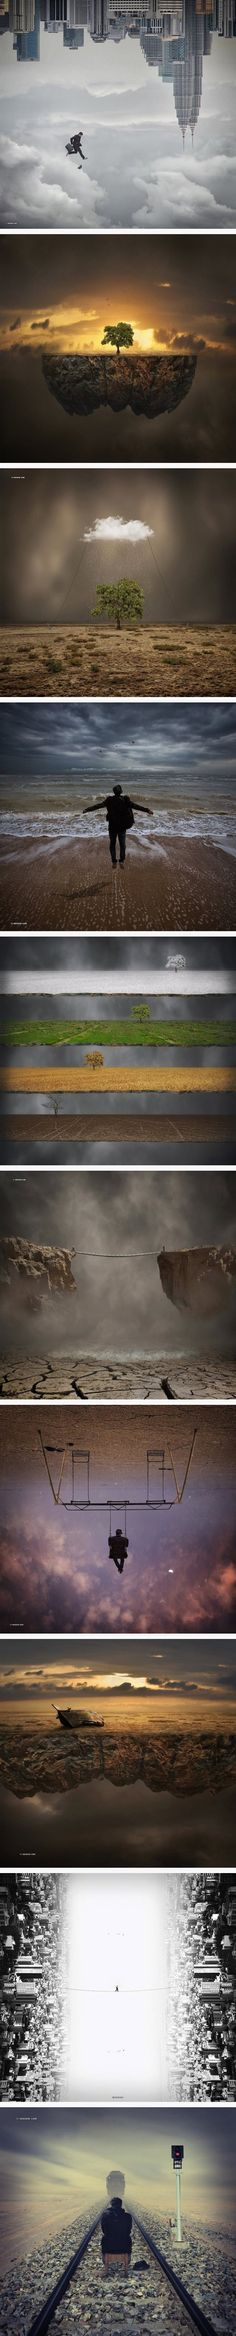 Zivana: Top one: Surreal Photo Manipulations by Hossein Zare